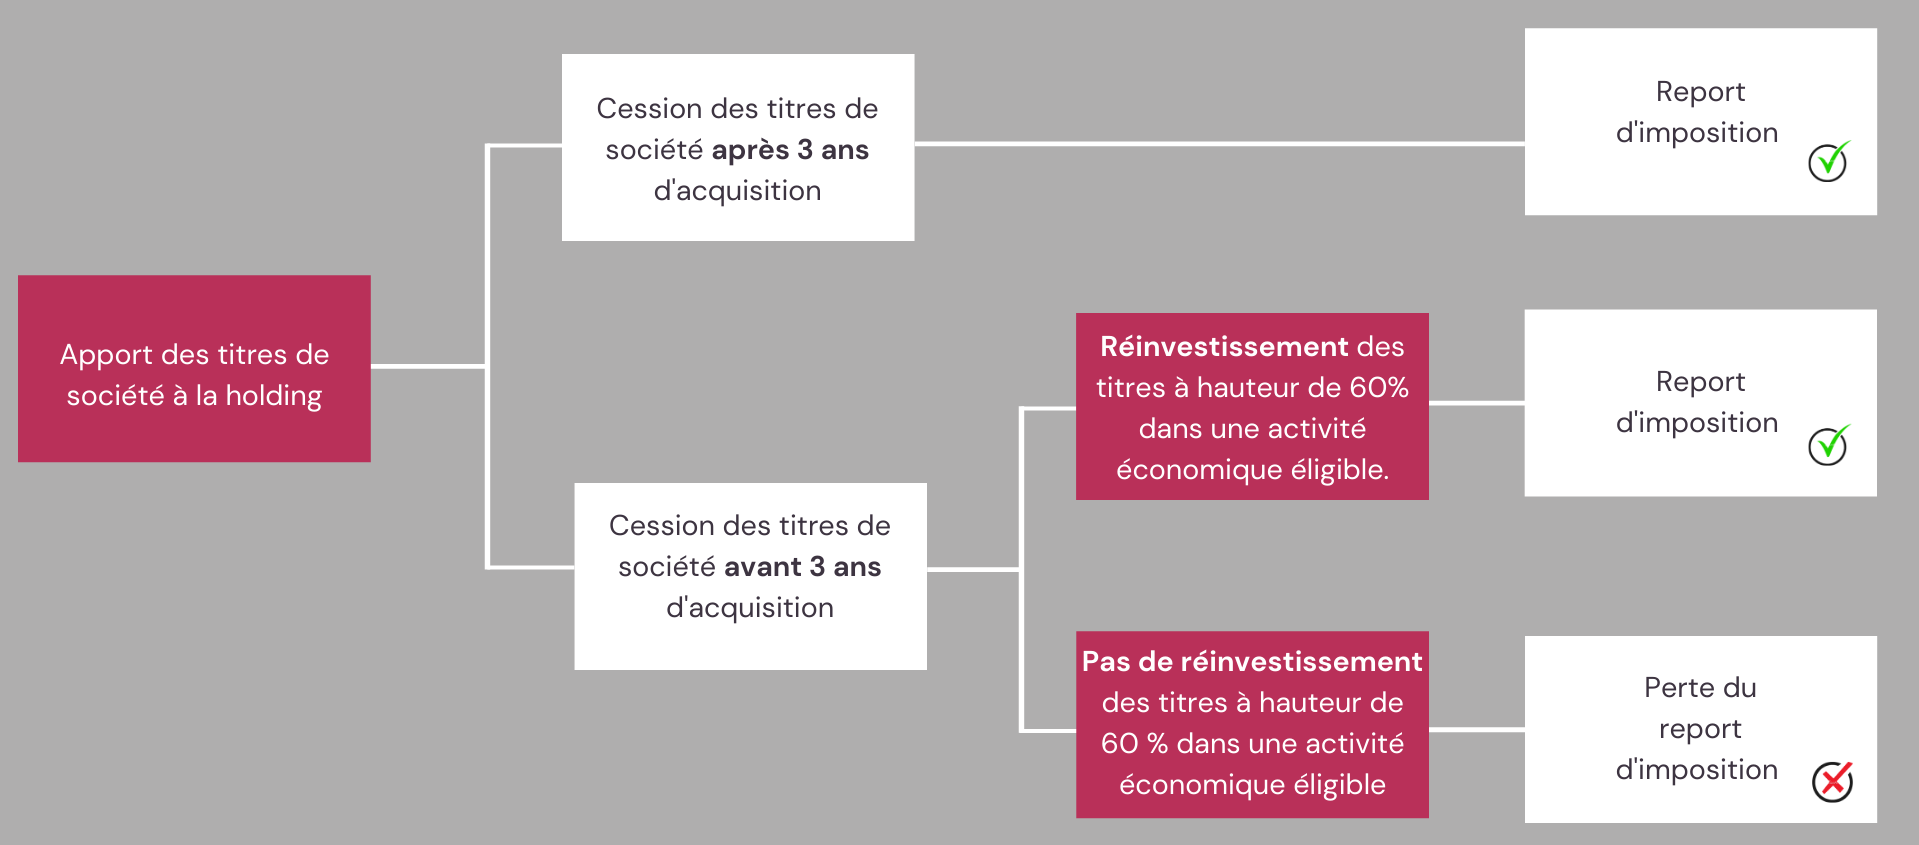 Apport cession